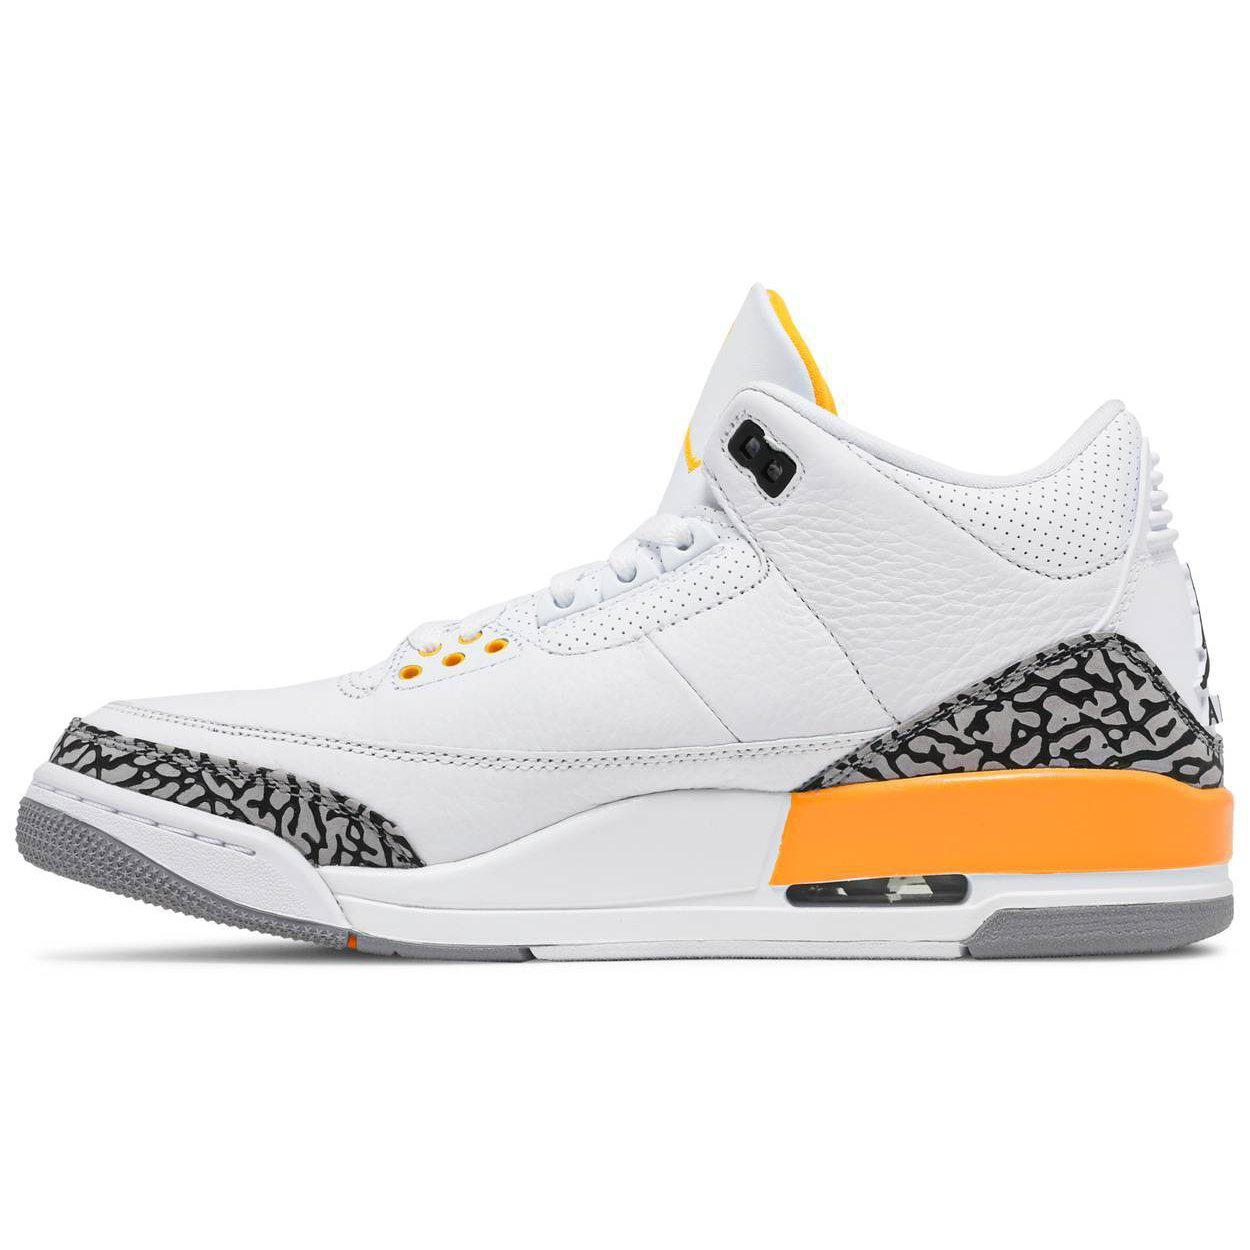 Nike Wmns Air Jordan 3 Retro 'Laser Orange' | Waves Never Die | Nike | Sneakers